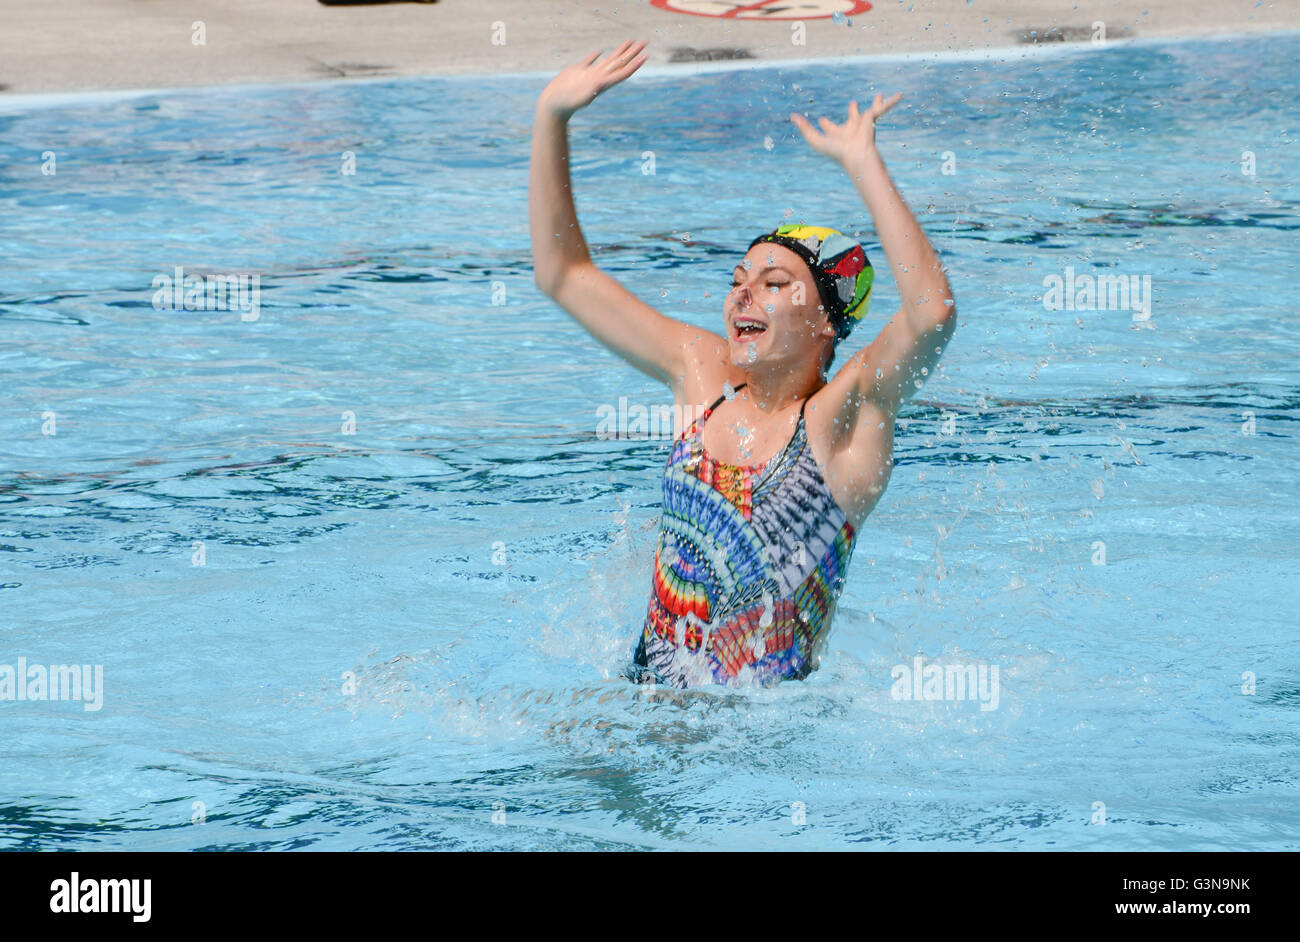 Massagno, Switzerland - 12 June 2016 - Girl in a pool practicing synchronized swimming Stock Photo